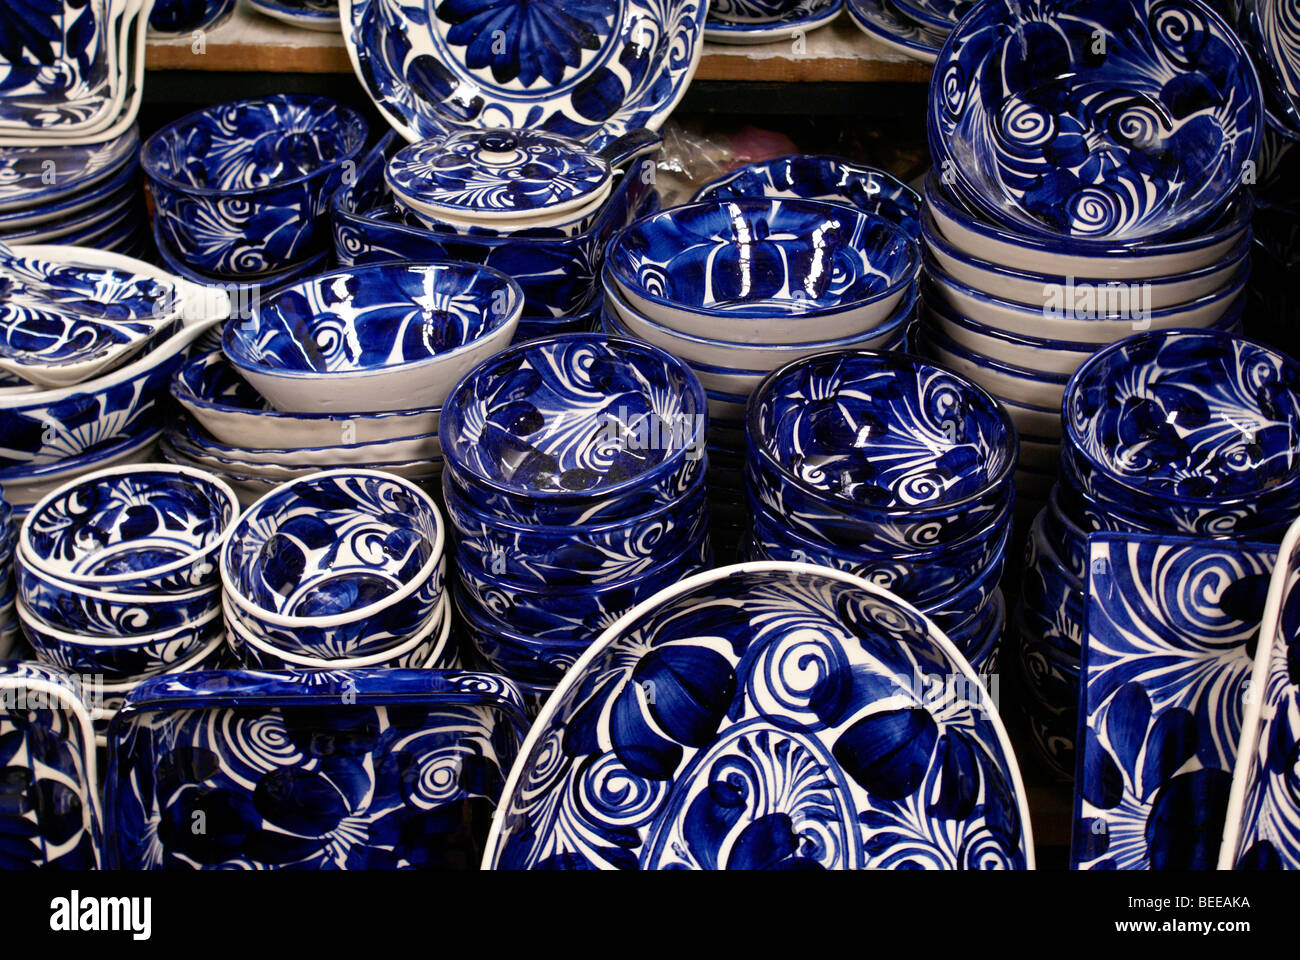 Blue and white pottery - Blue And White Pottery From Dolores Hidalgo For Sale In The Market In San Miguel De